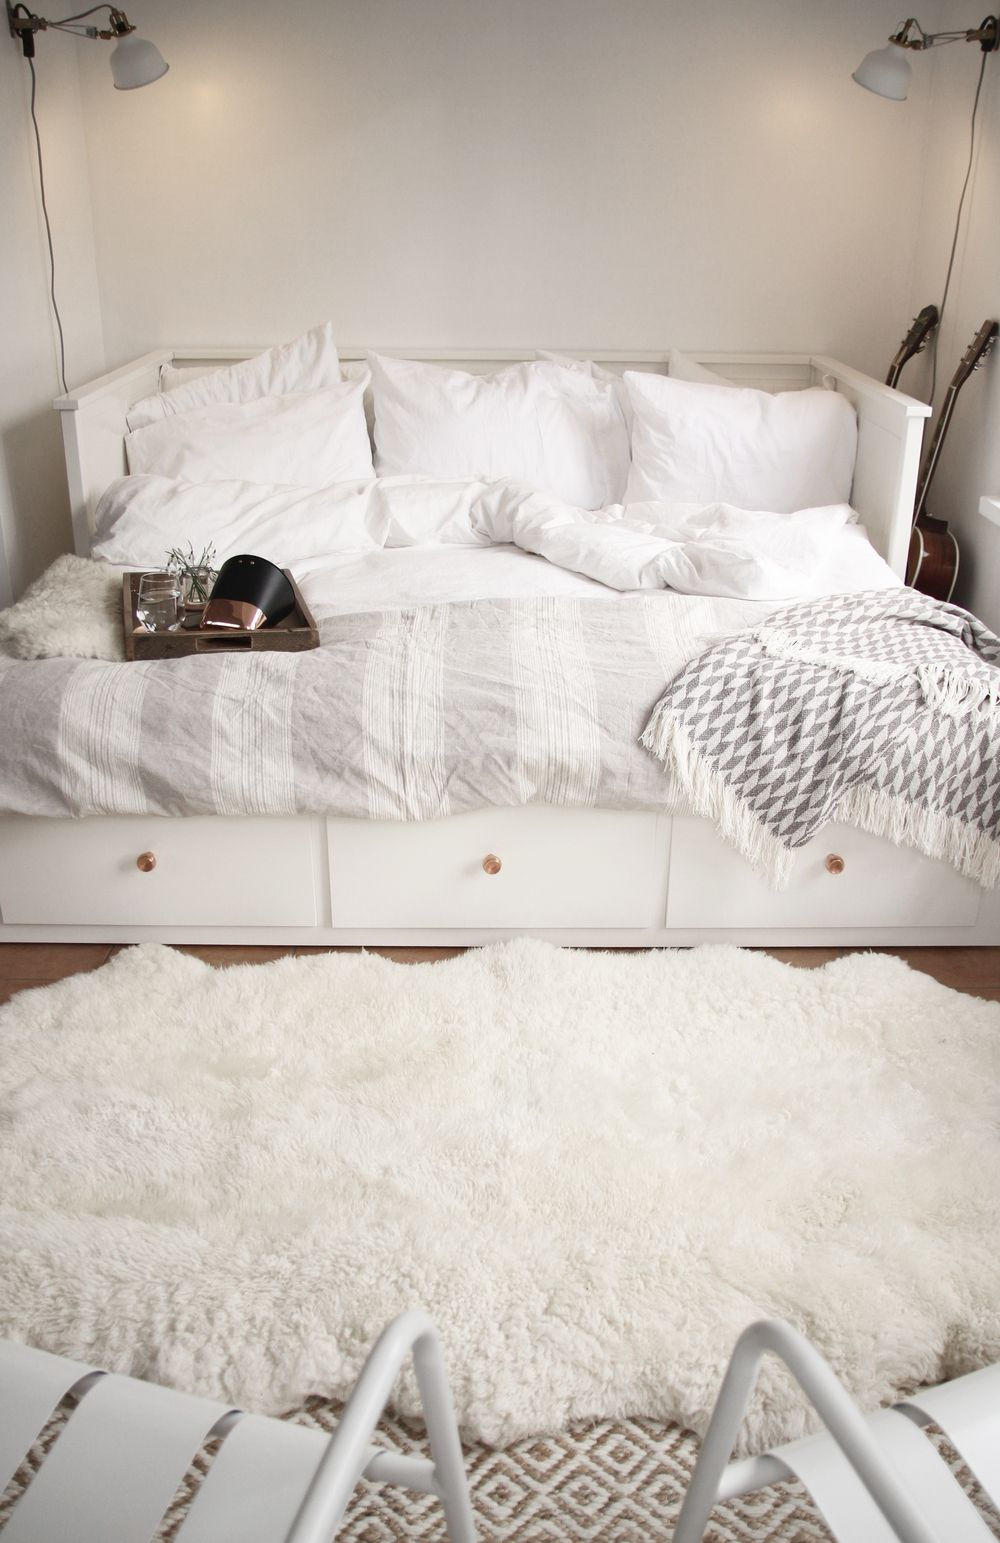 A month of home my favourite corner laura bancroft ikea daybed daybed and hemnes - Tumblr zimmer ikea ...